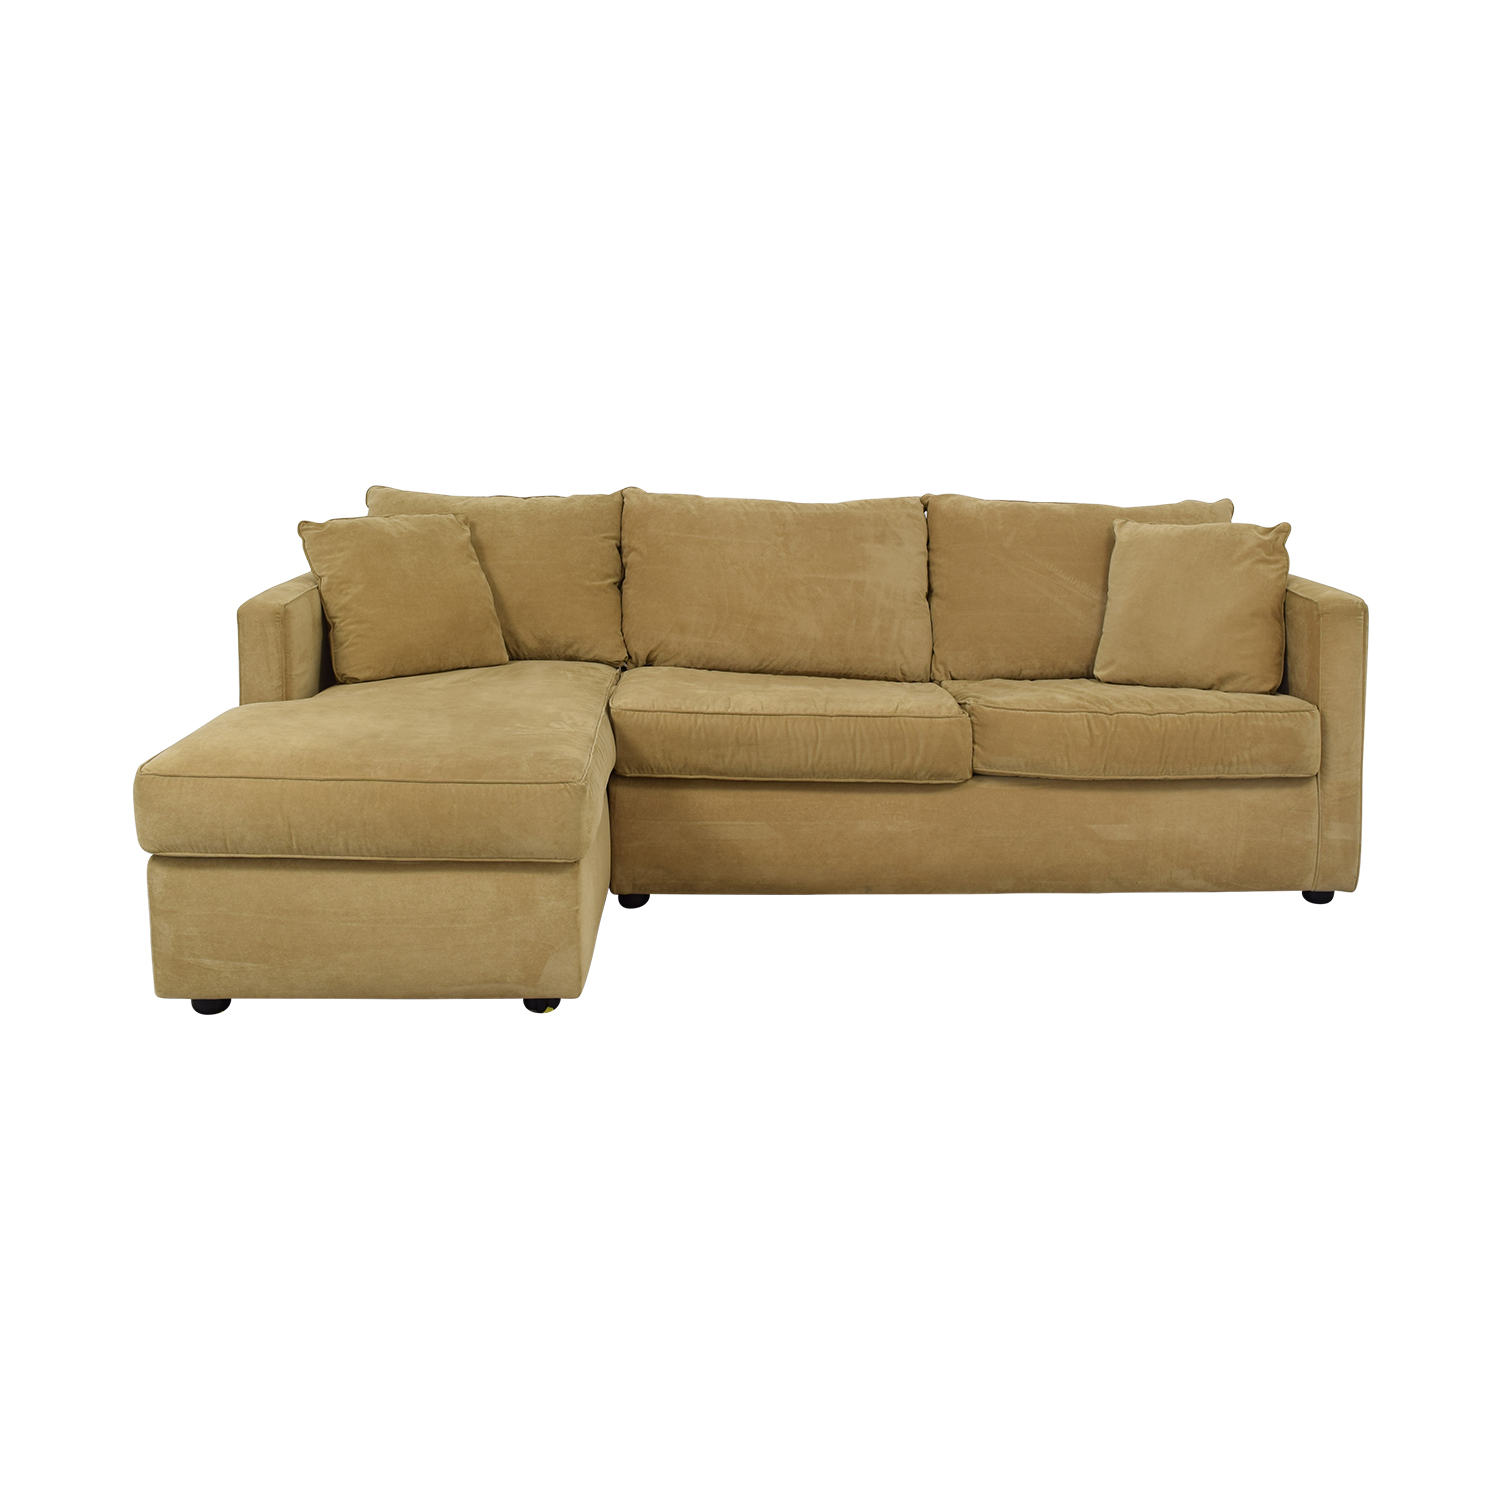 Klaussner Klaussner Chaise Sectional Sleeper Sofa dimensions